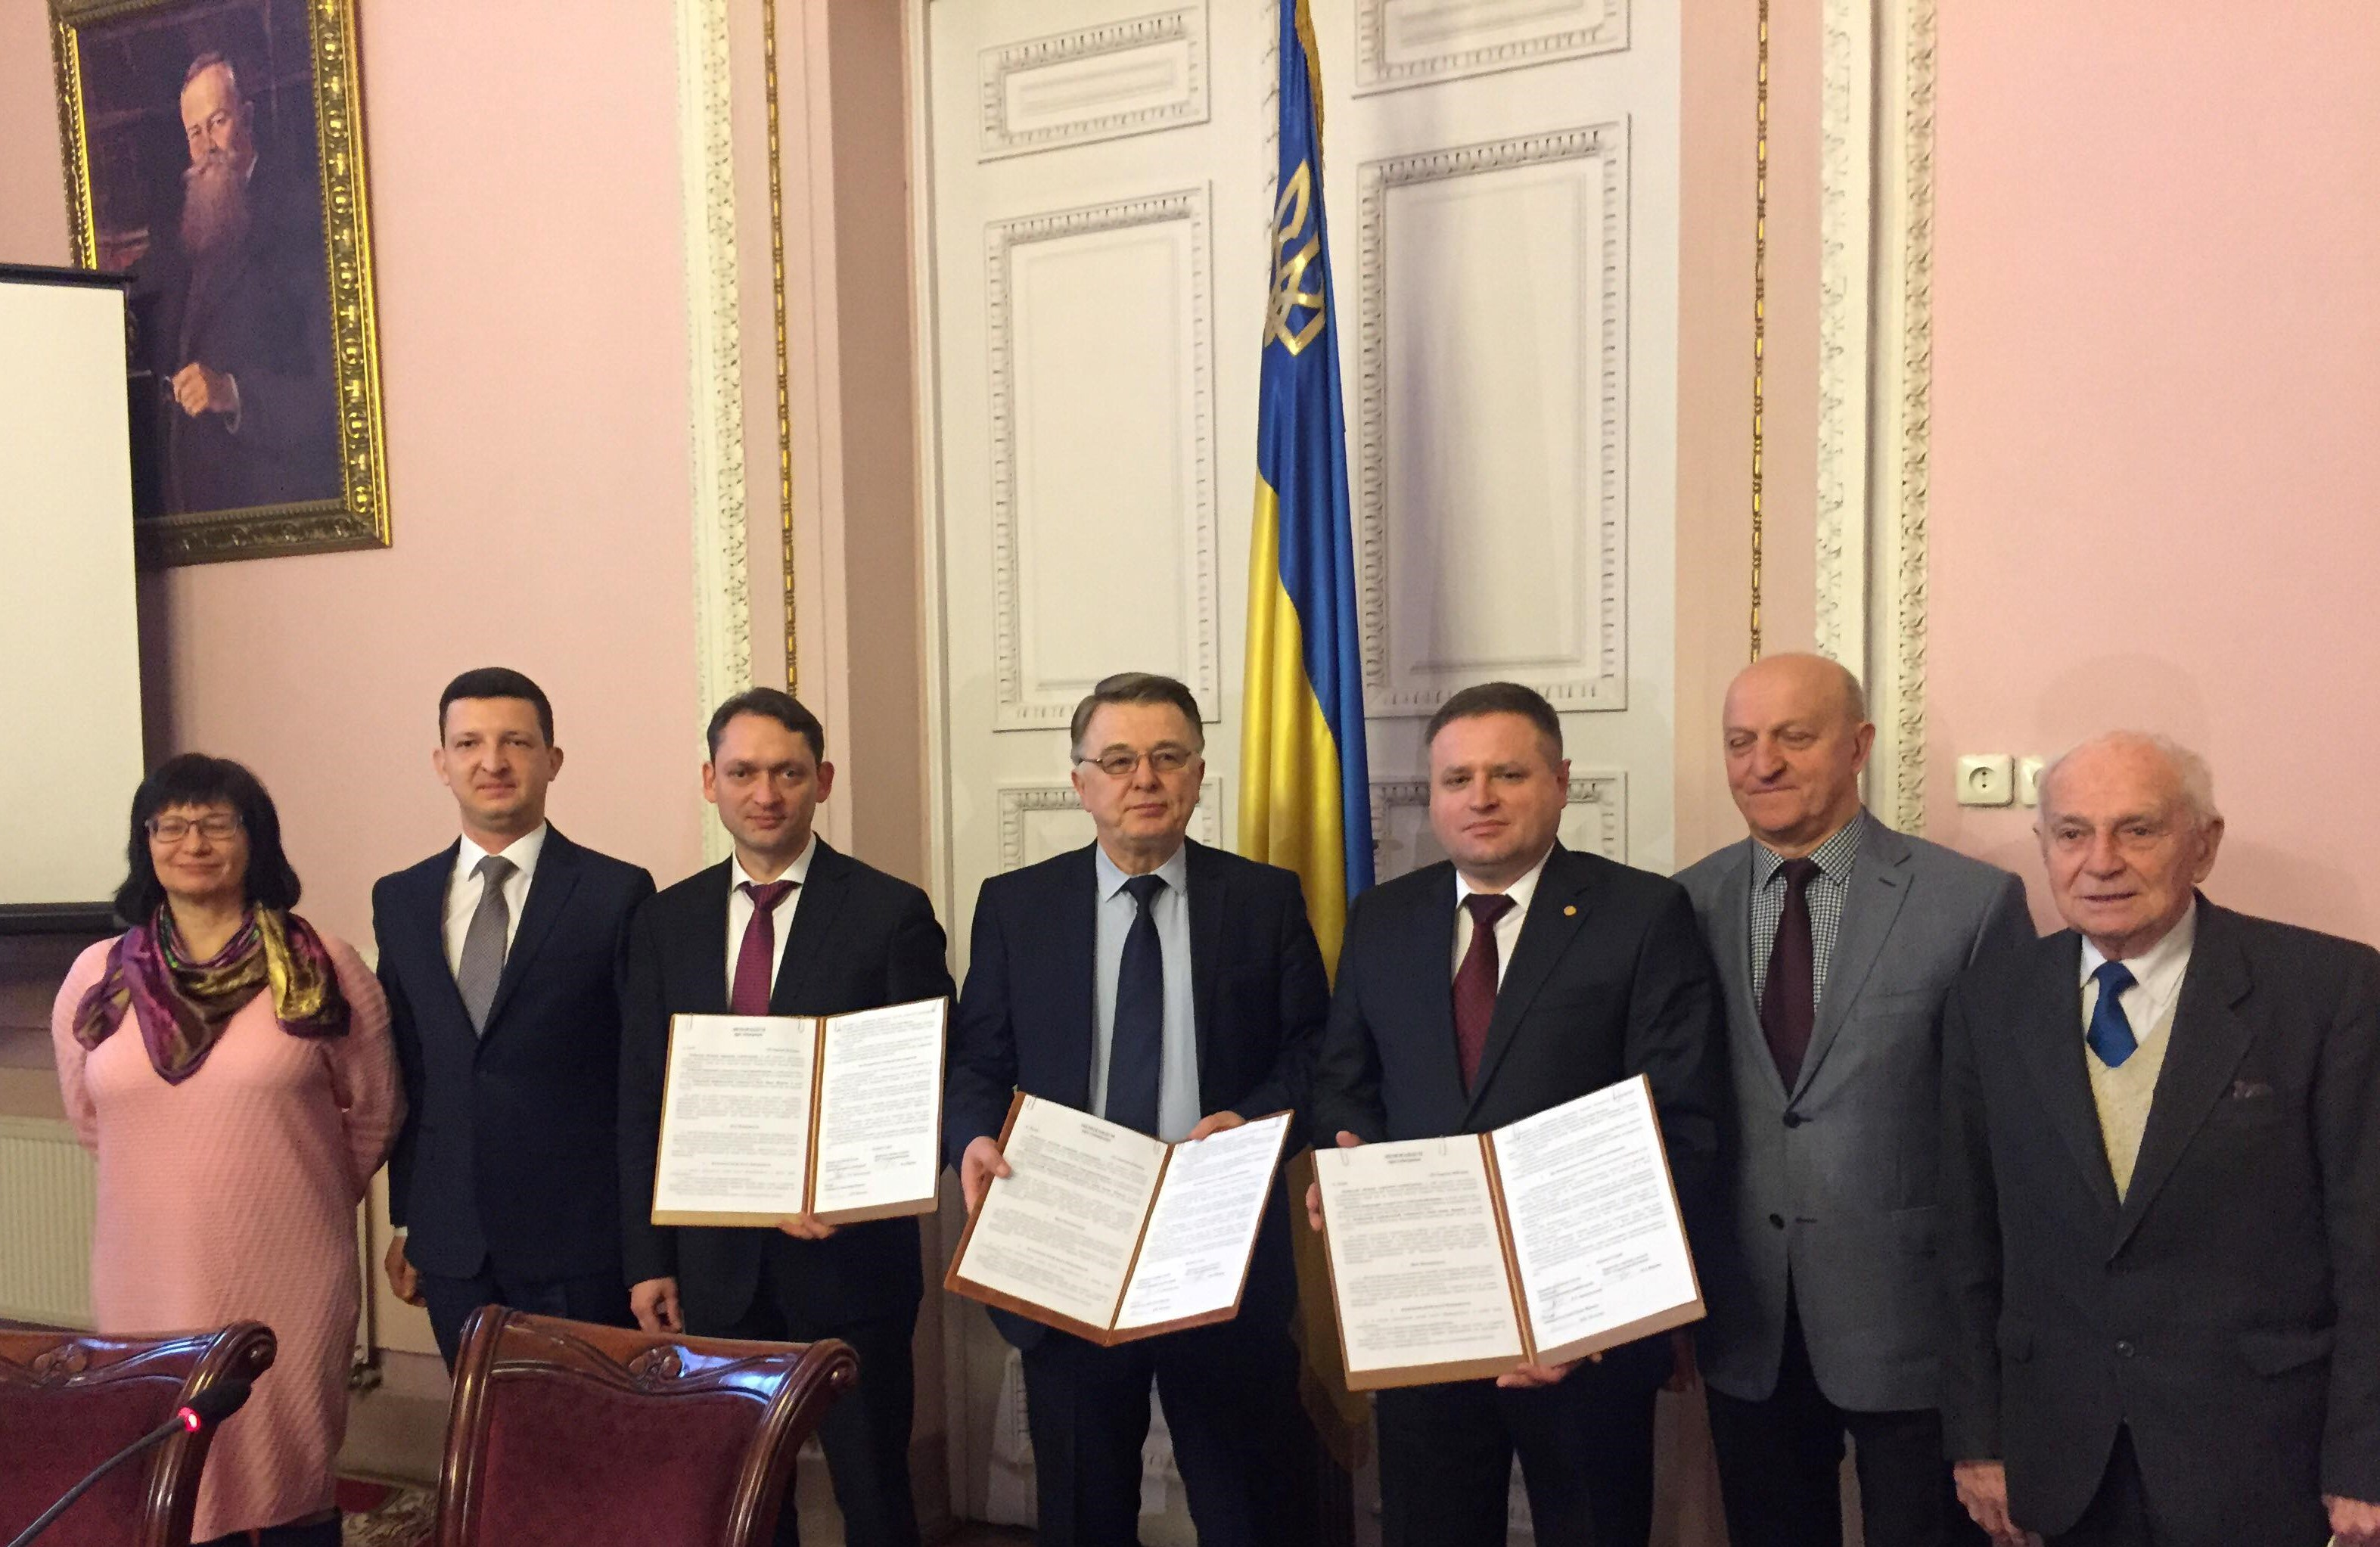 PJSC UkrGasVydobuvannya initiates cooperation with the Ivan Franko National University of Lviv with the support of Lviv Regional State Administration